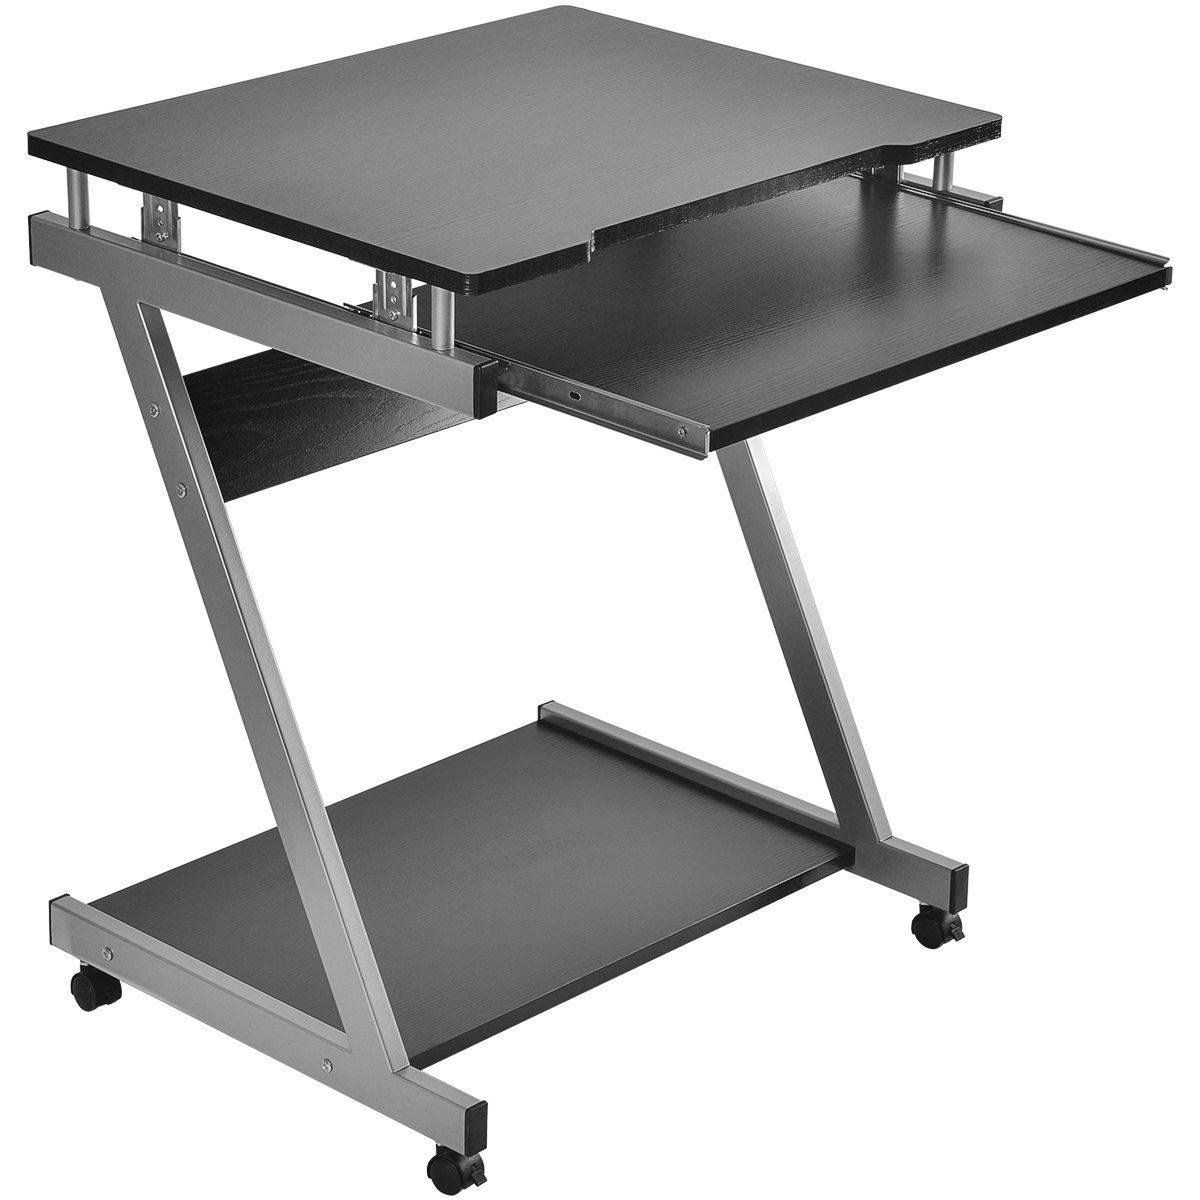 LIFE CARVER Small Z Shaped Computer Desk PC Laptop Table with Sliding Keyboard for Small spaces or Places 4 Wheels Table Trolley Study Workstation